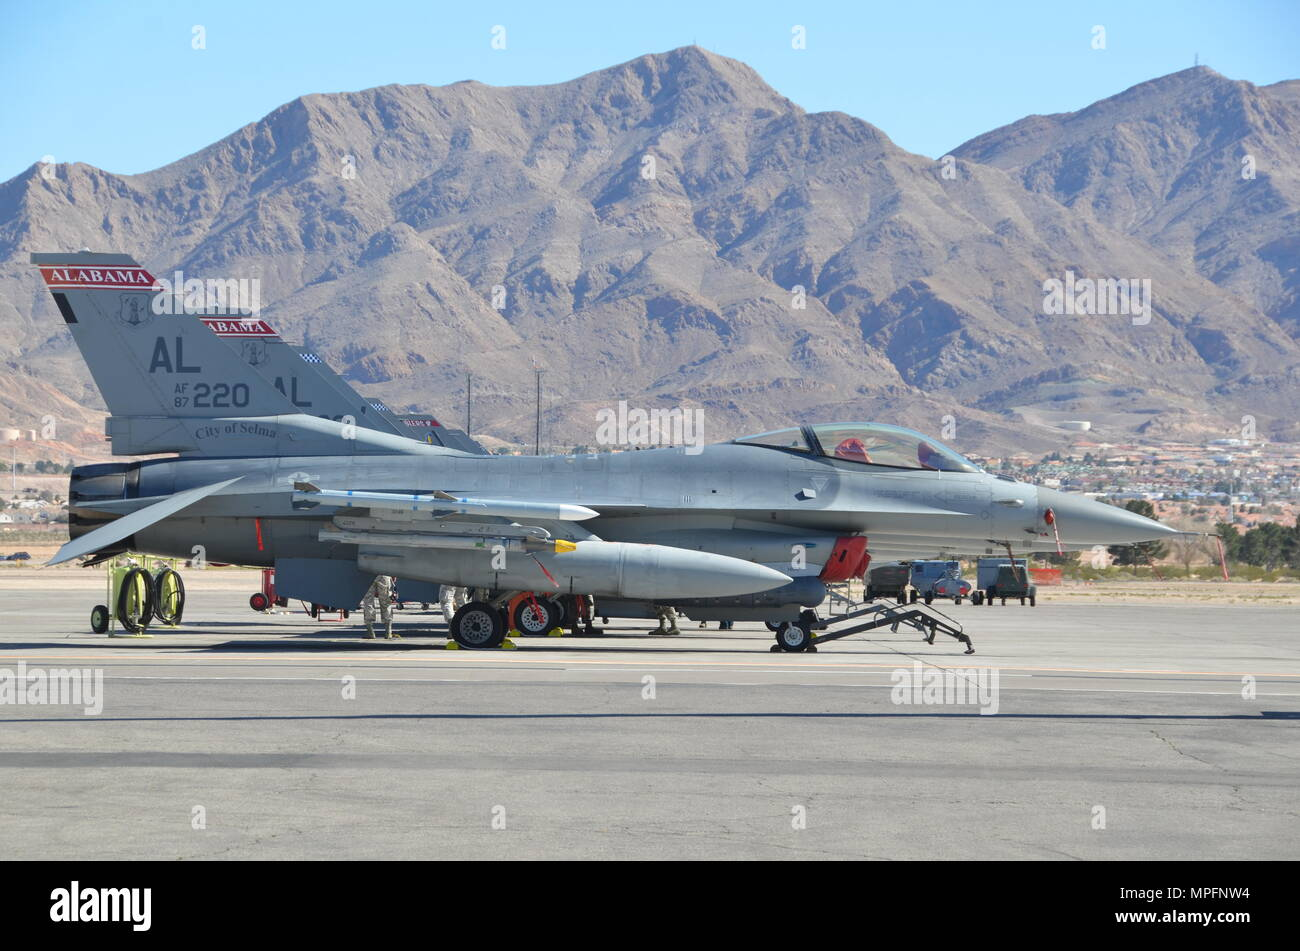 U S  Air Force F-16 Fighting Falcons, 187th Fighter Wing